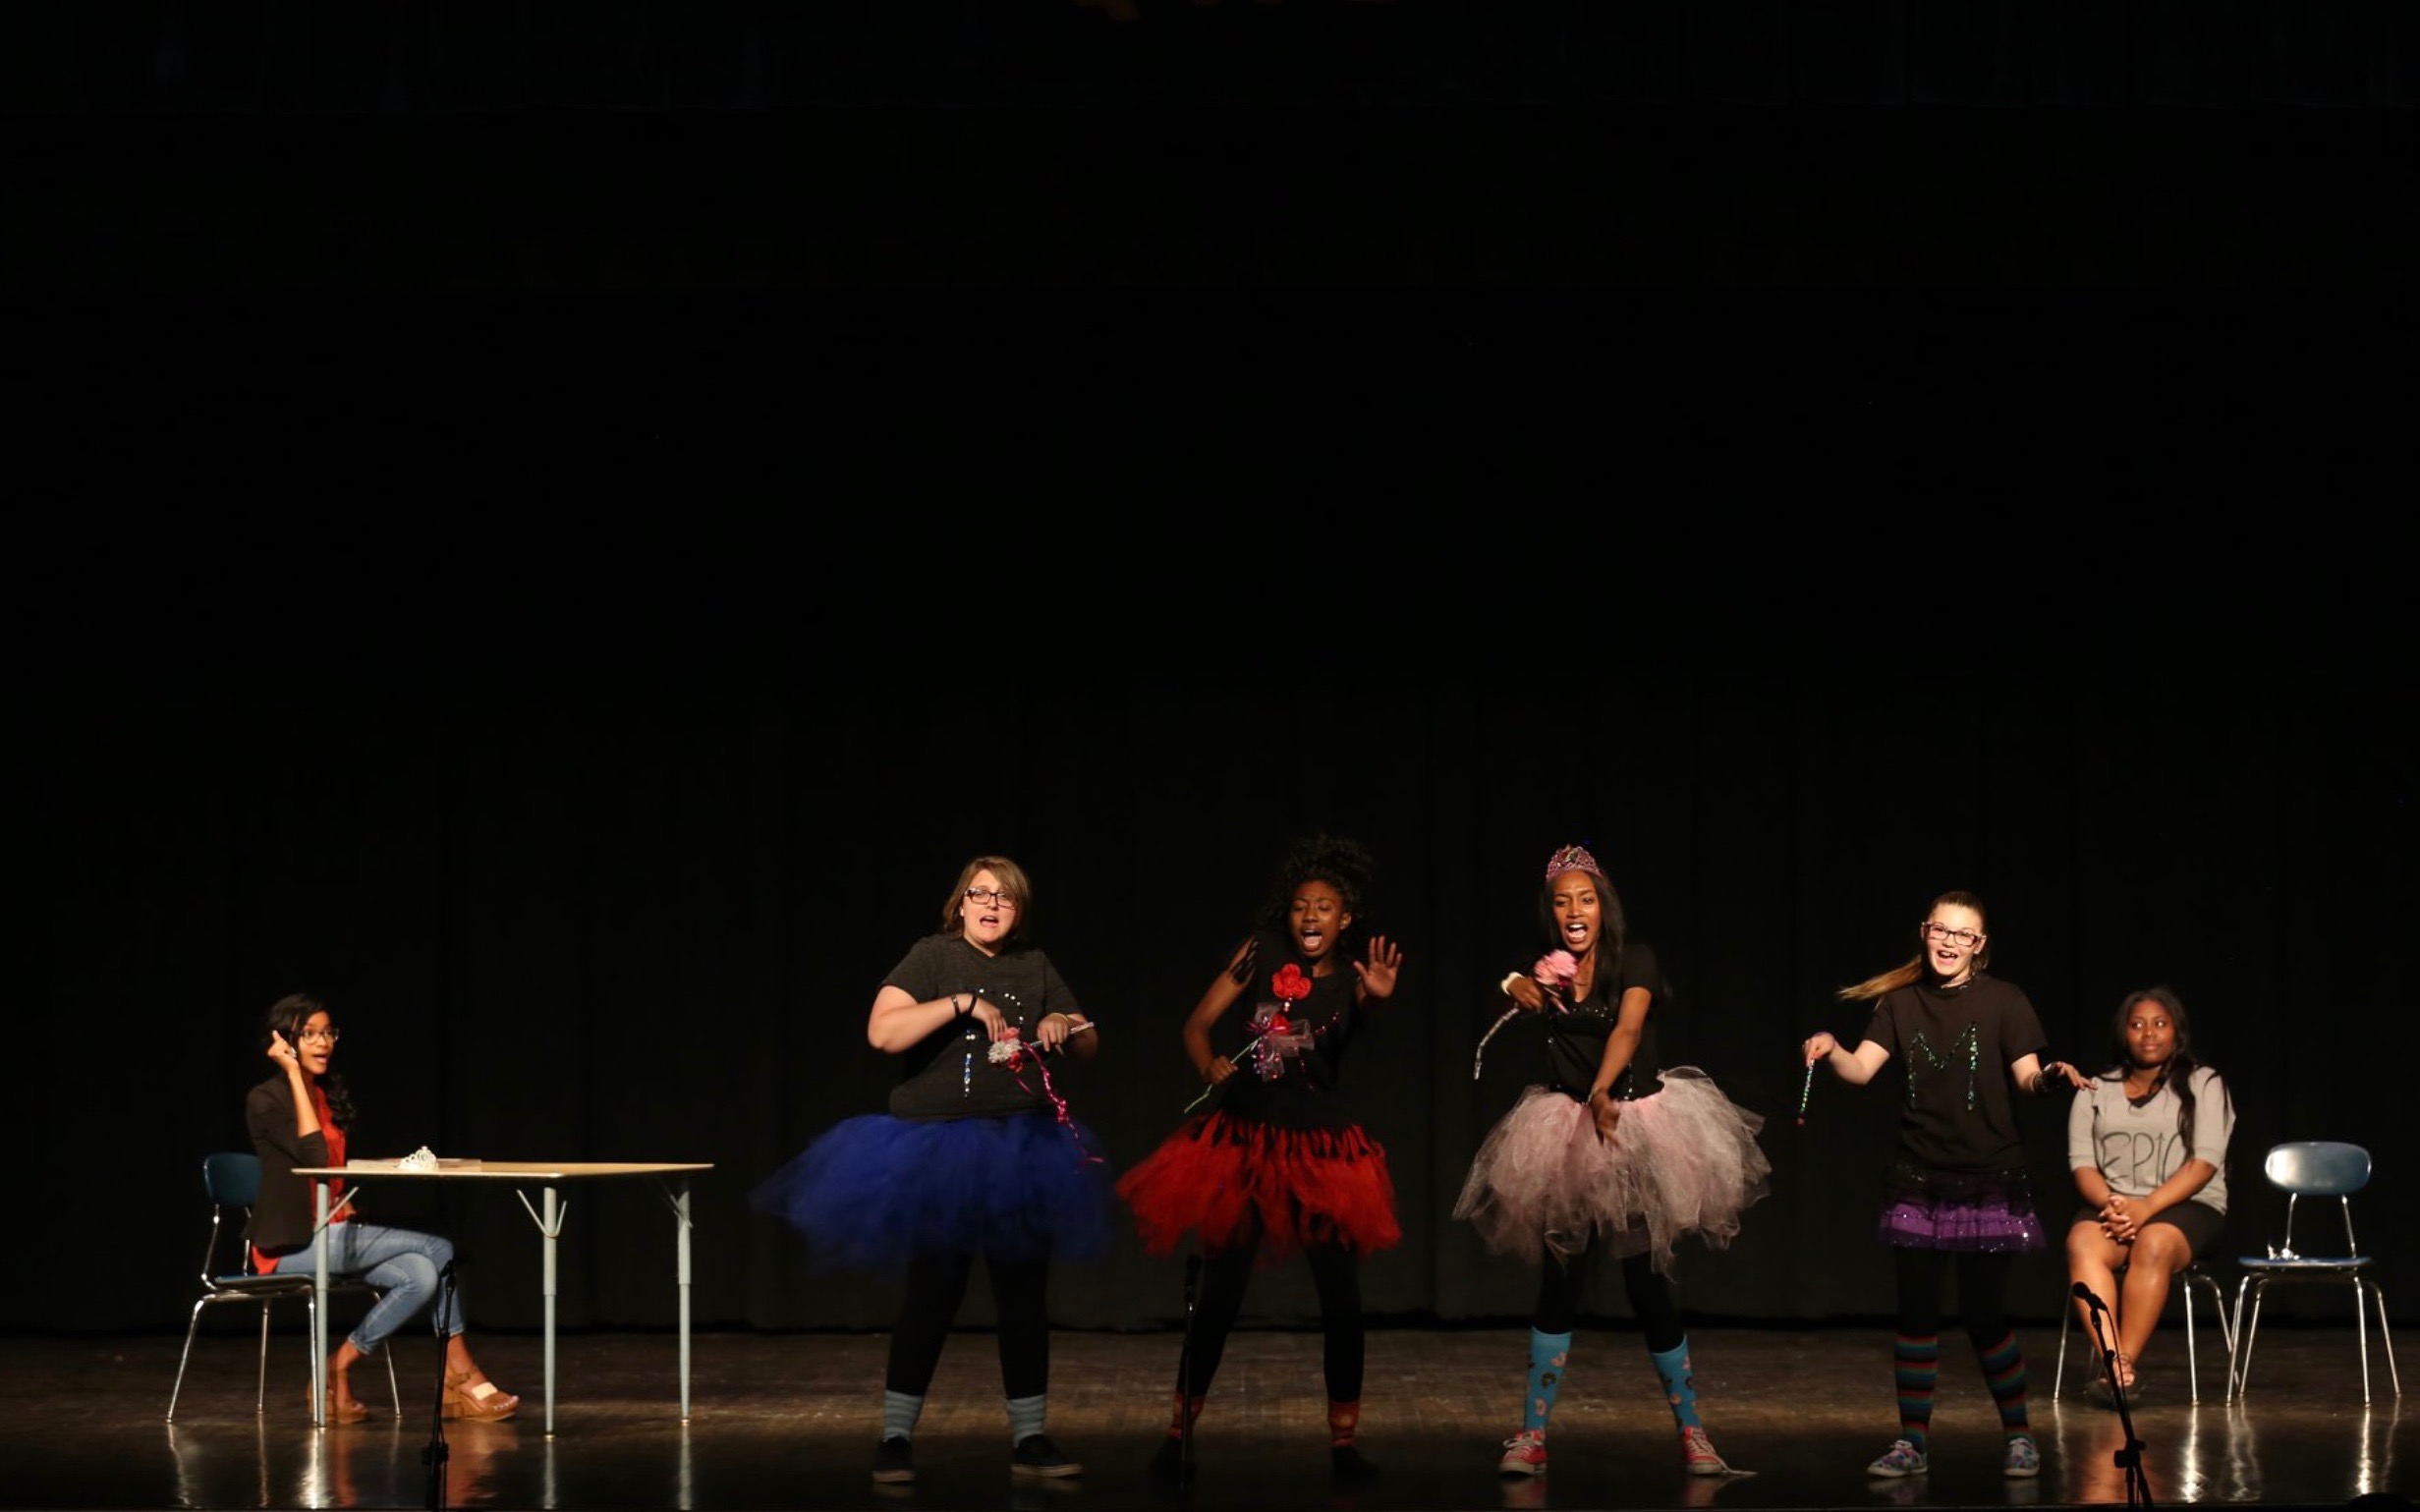 Harleigh and her fellow theatre classmates perform a skit on the stage of the QHS Auditorium.